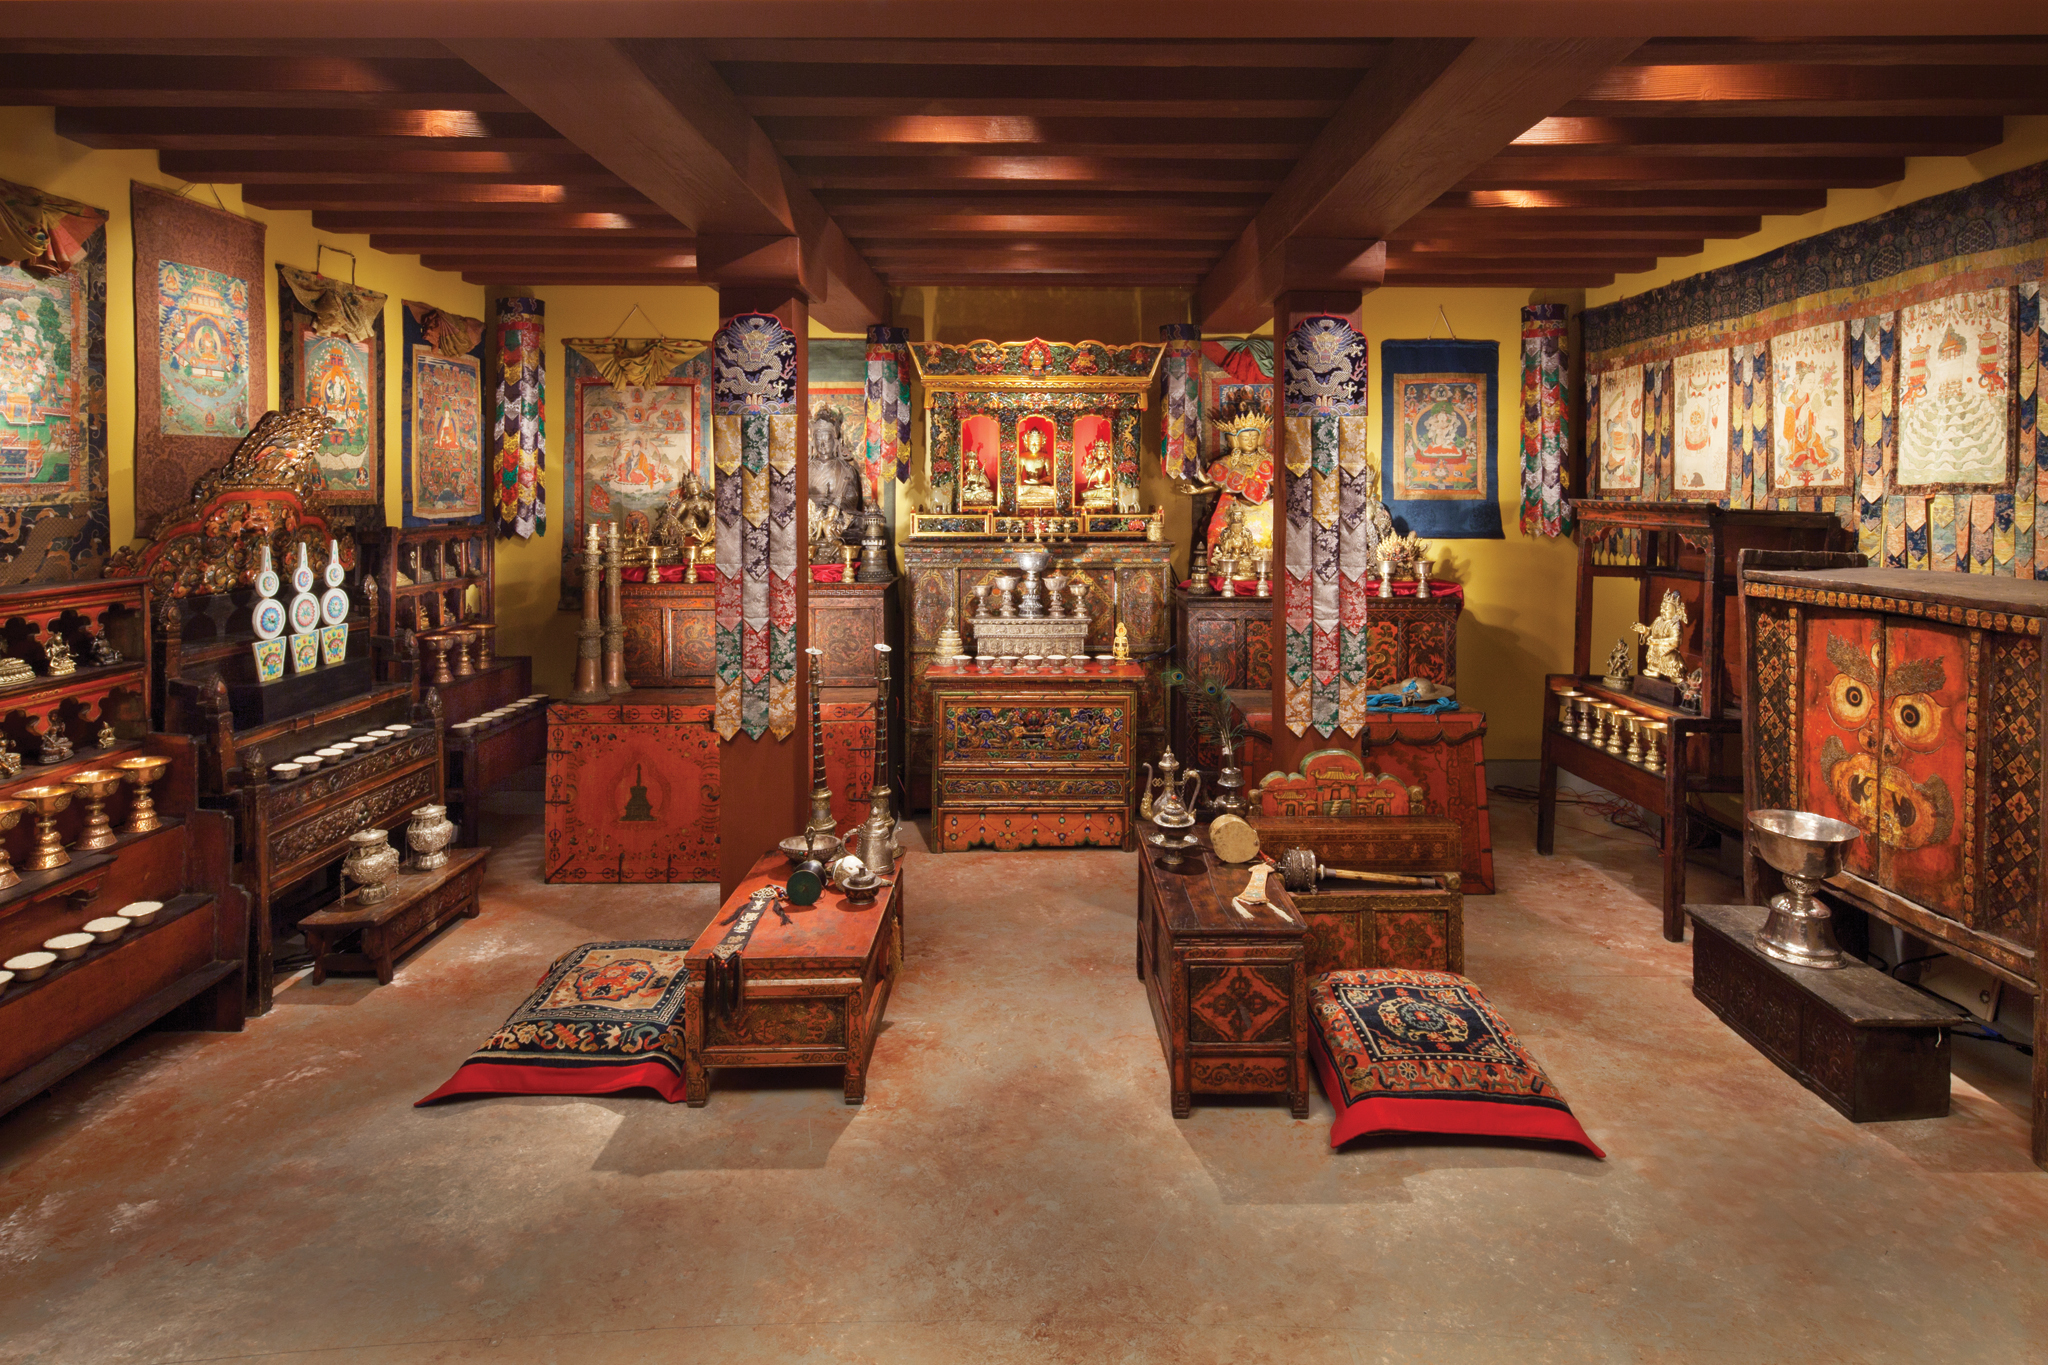 Tibetan Buddhist Shrine Room at the Rubin Museum of Art